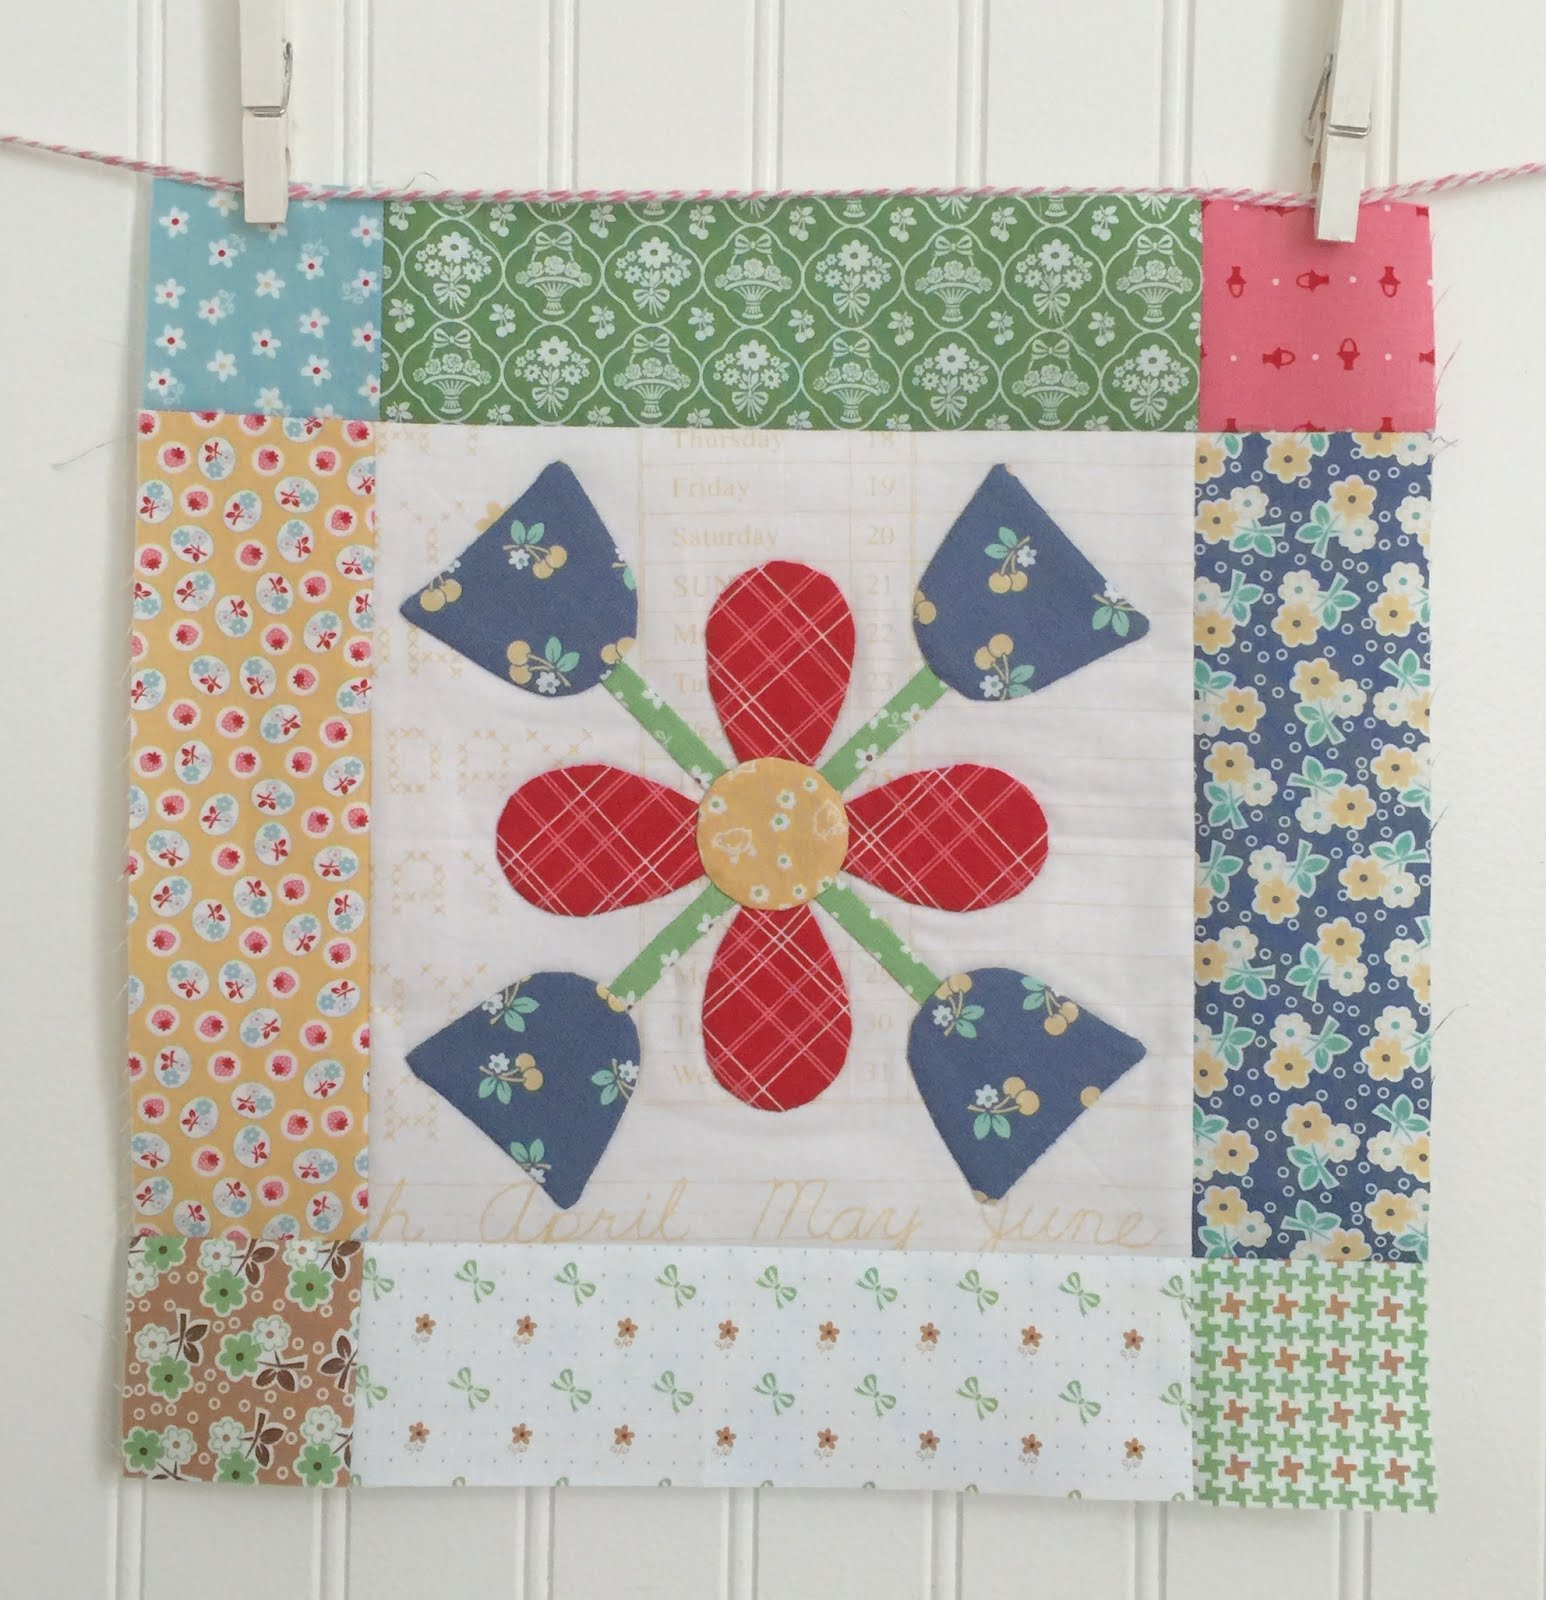 BLOOM Sew Along! 2